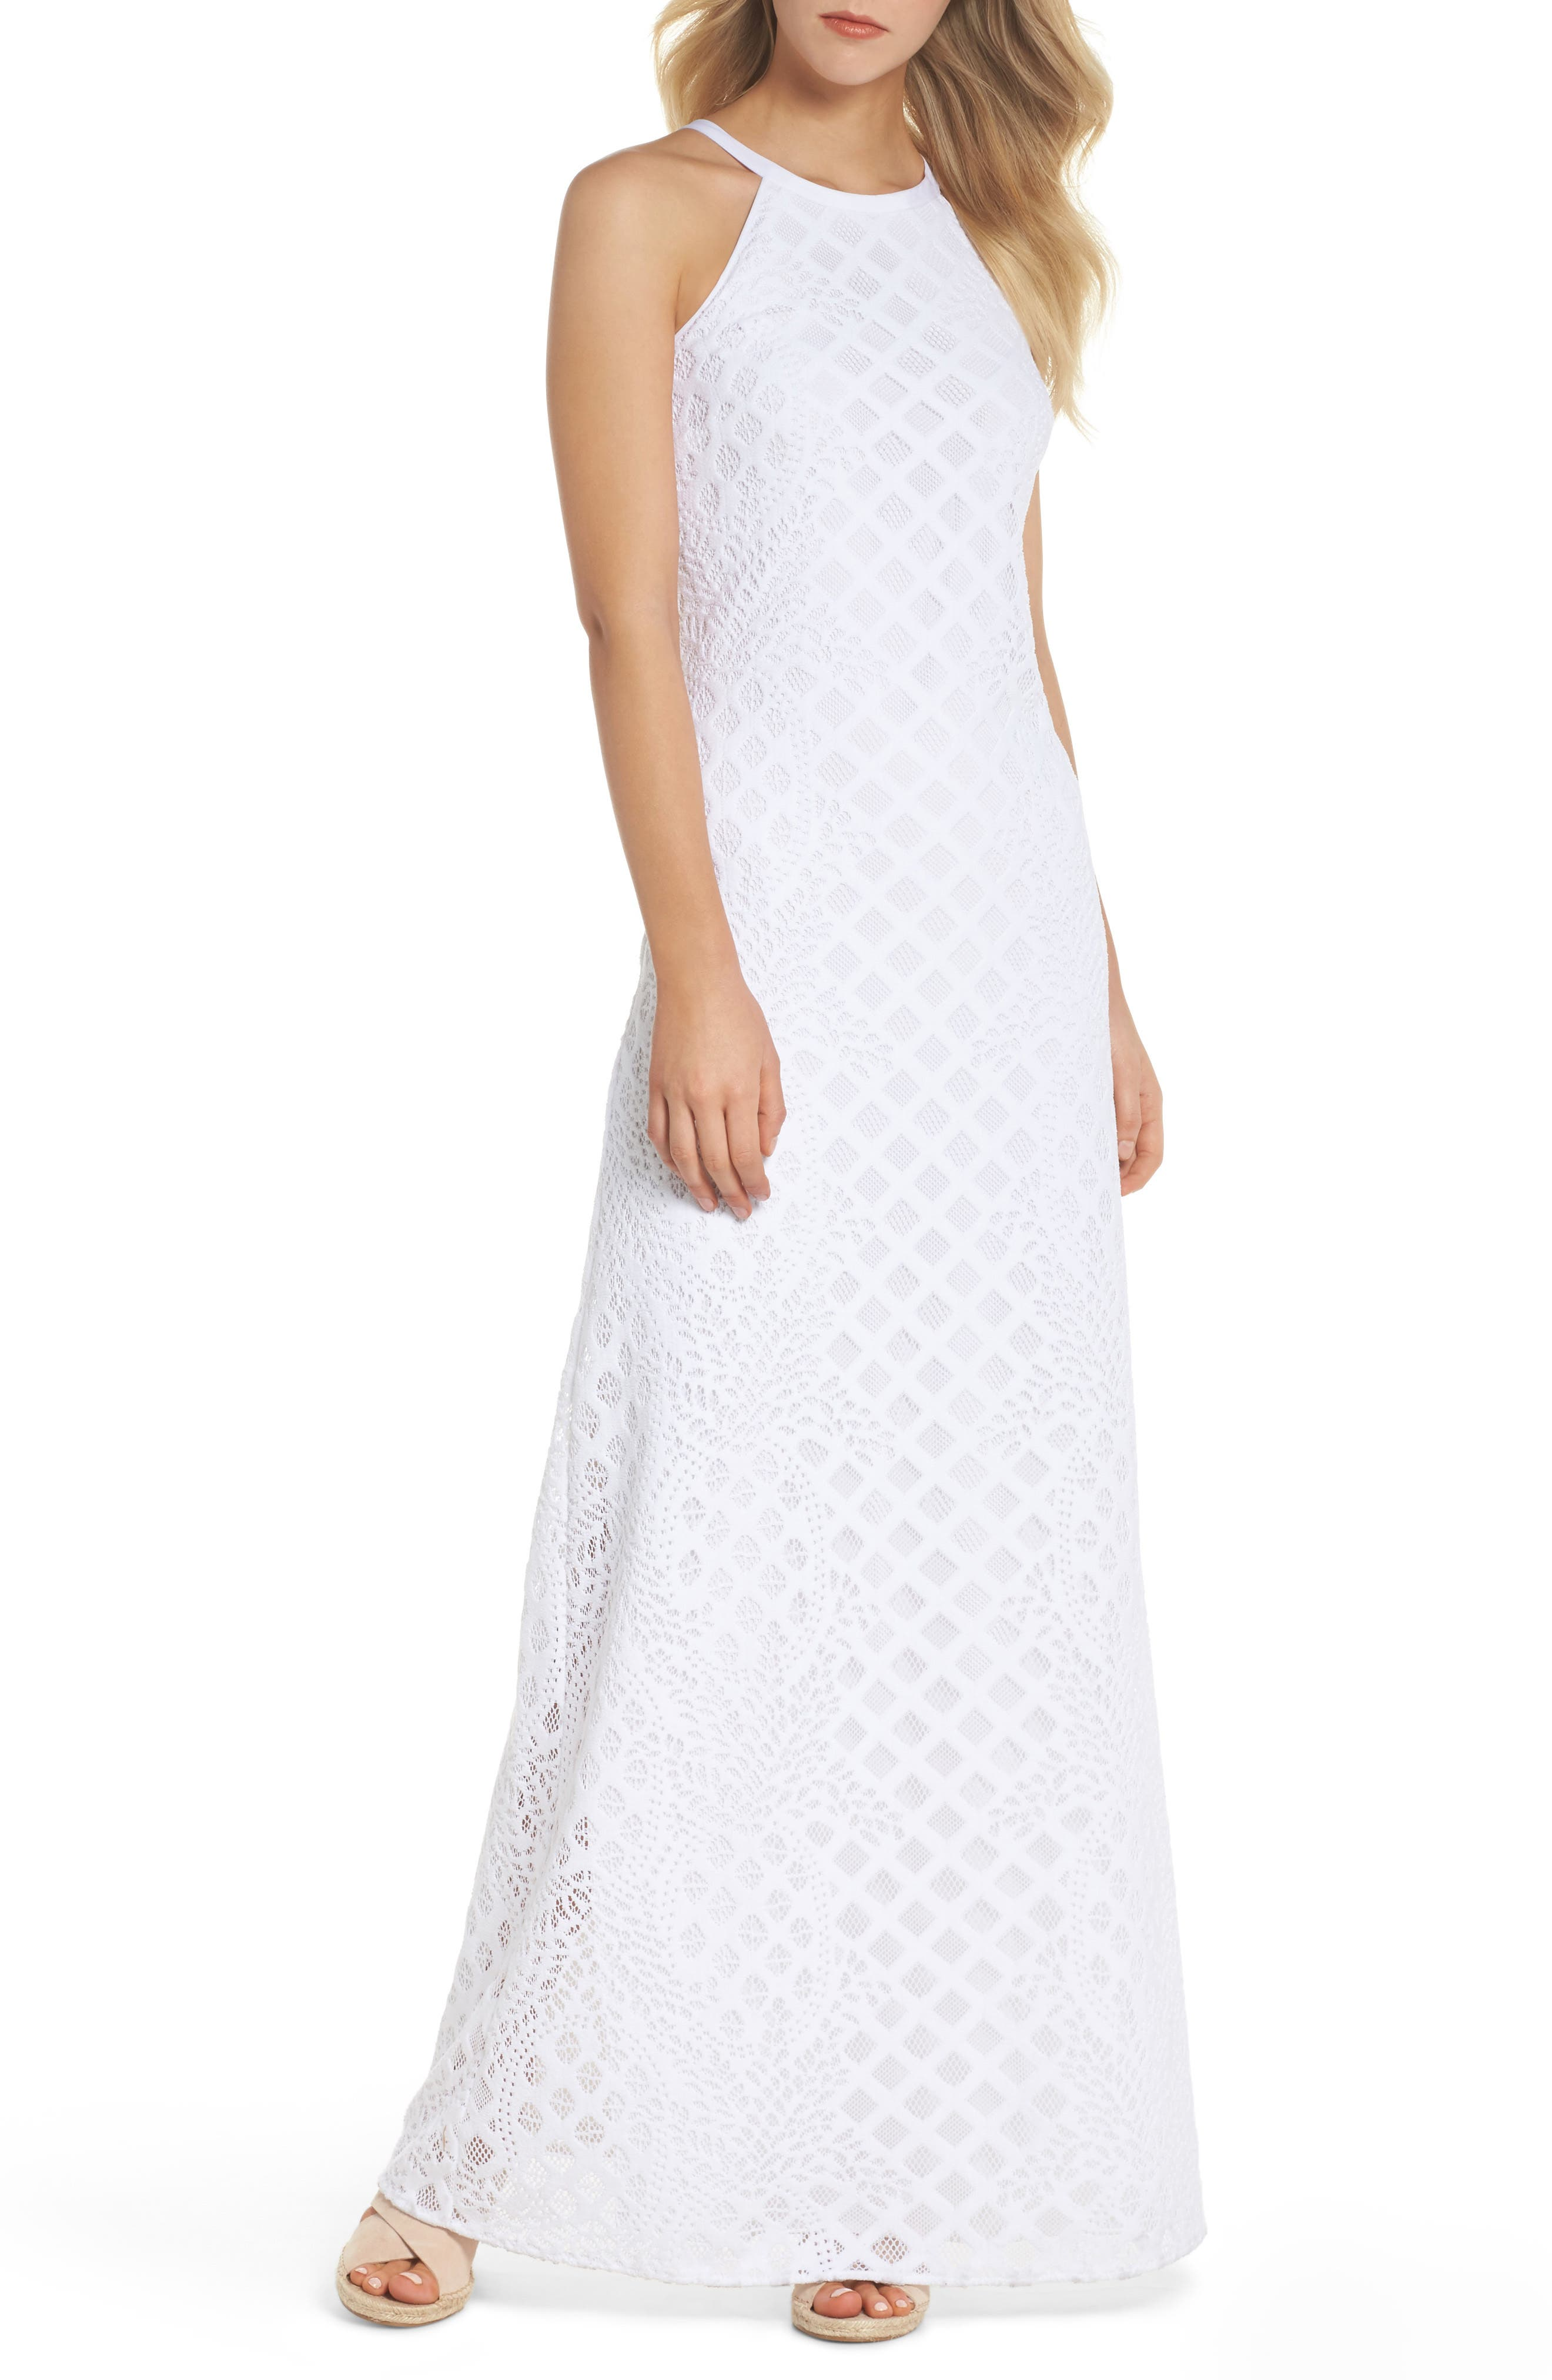 Pearl Maxi Dress,                         Main,                         color, Resort White Pineapple Lace